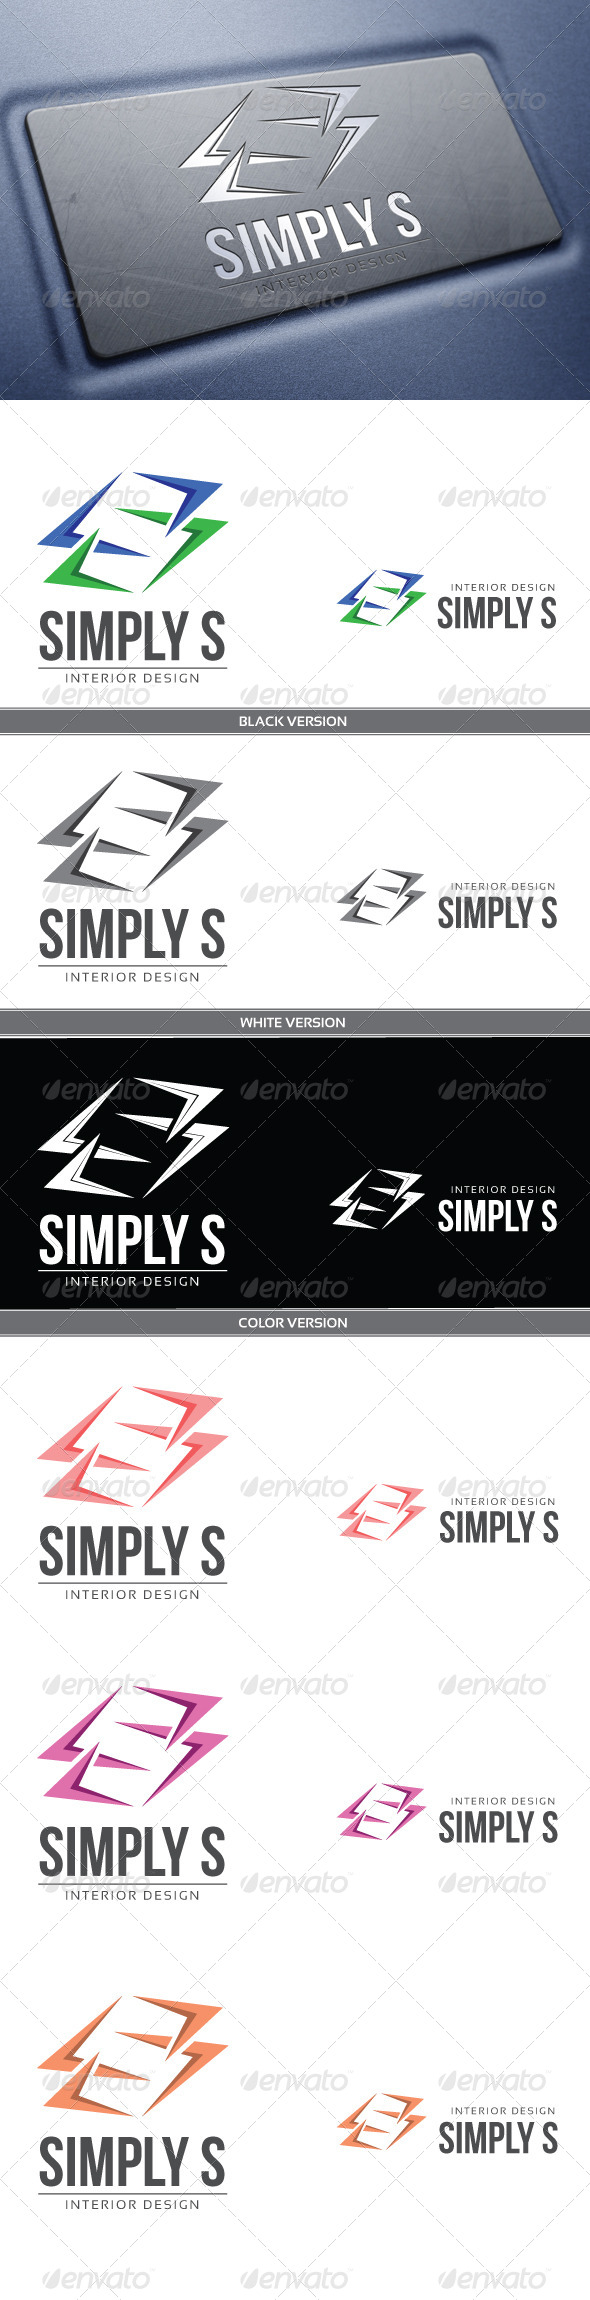 GraphicRiver Simply S 4232223